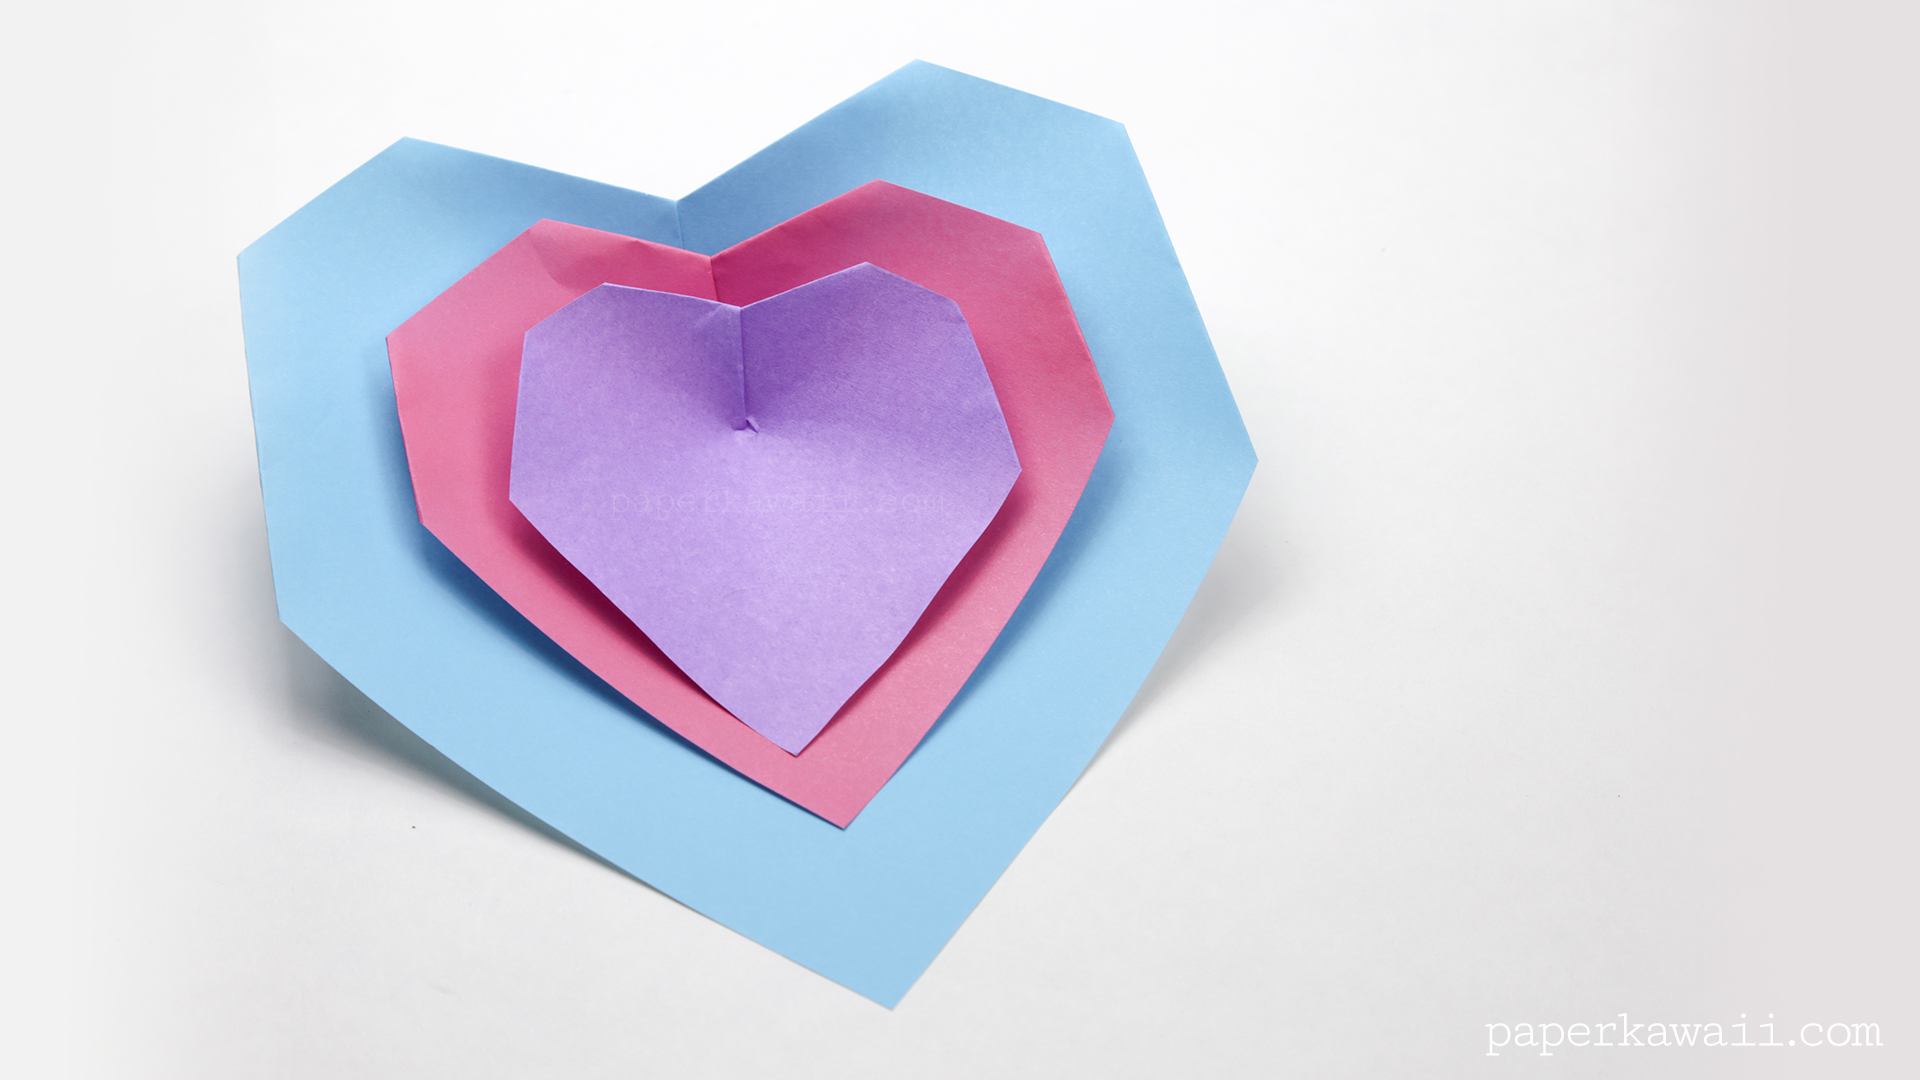 Super Easy Origami Heart Instructions - Paper Kawaii - photo#15